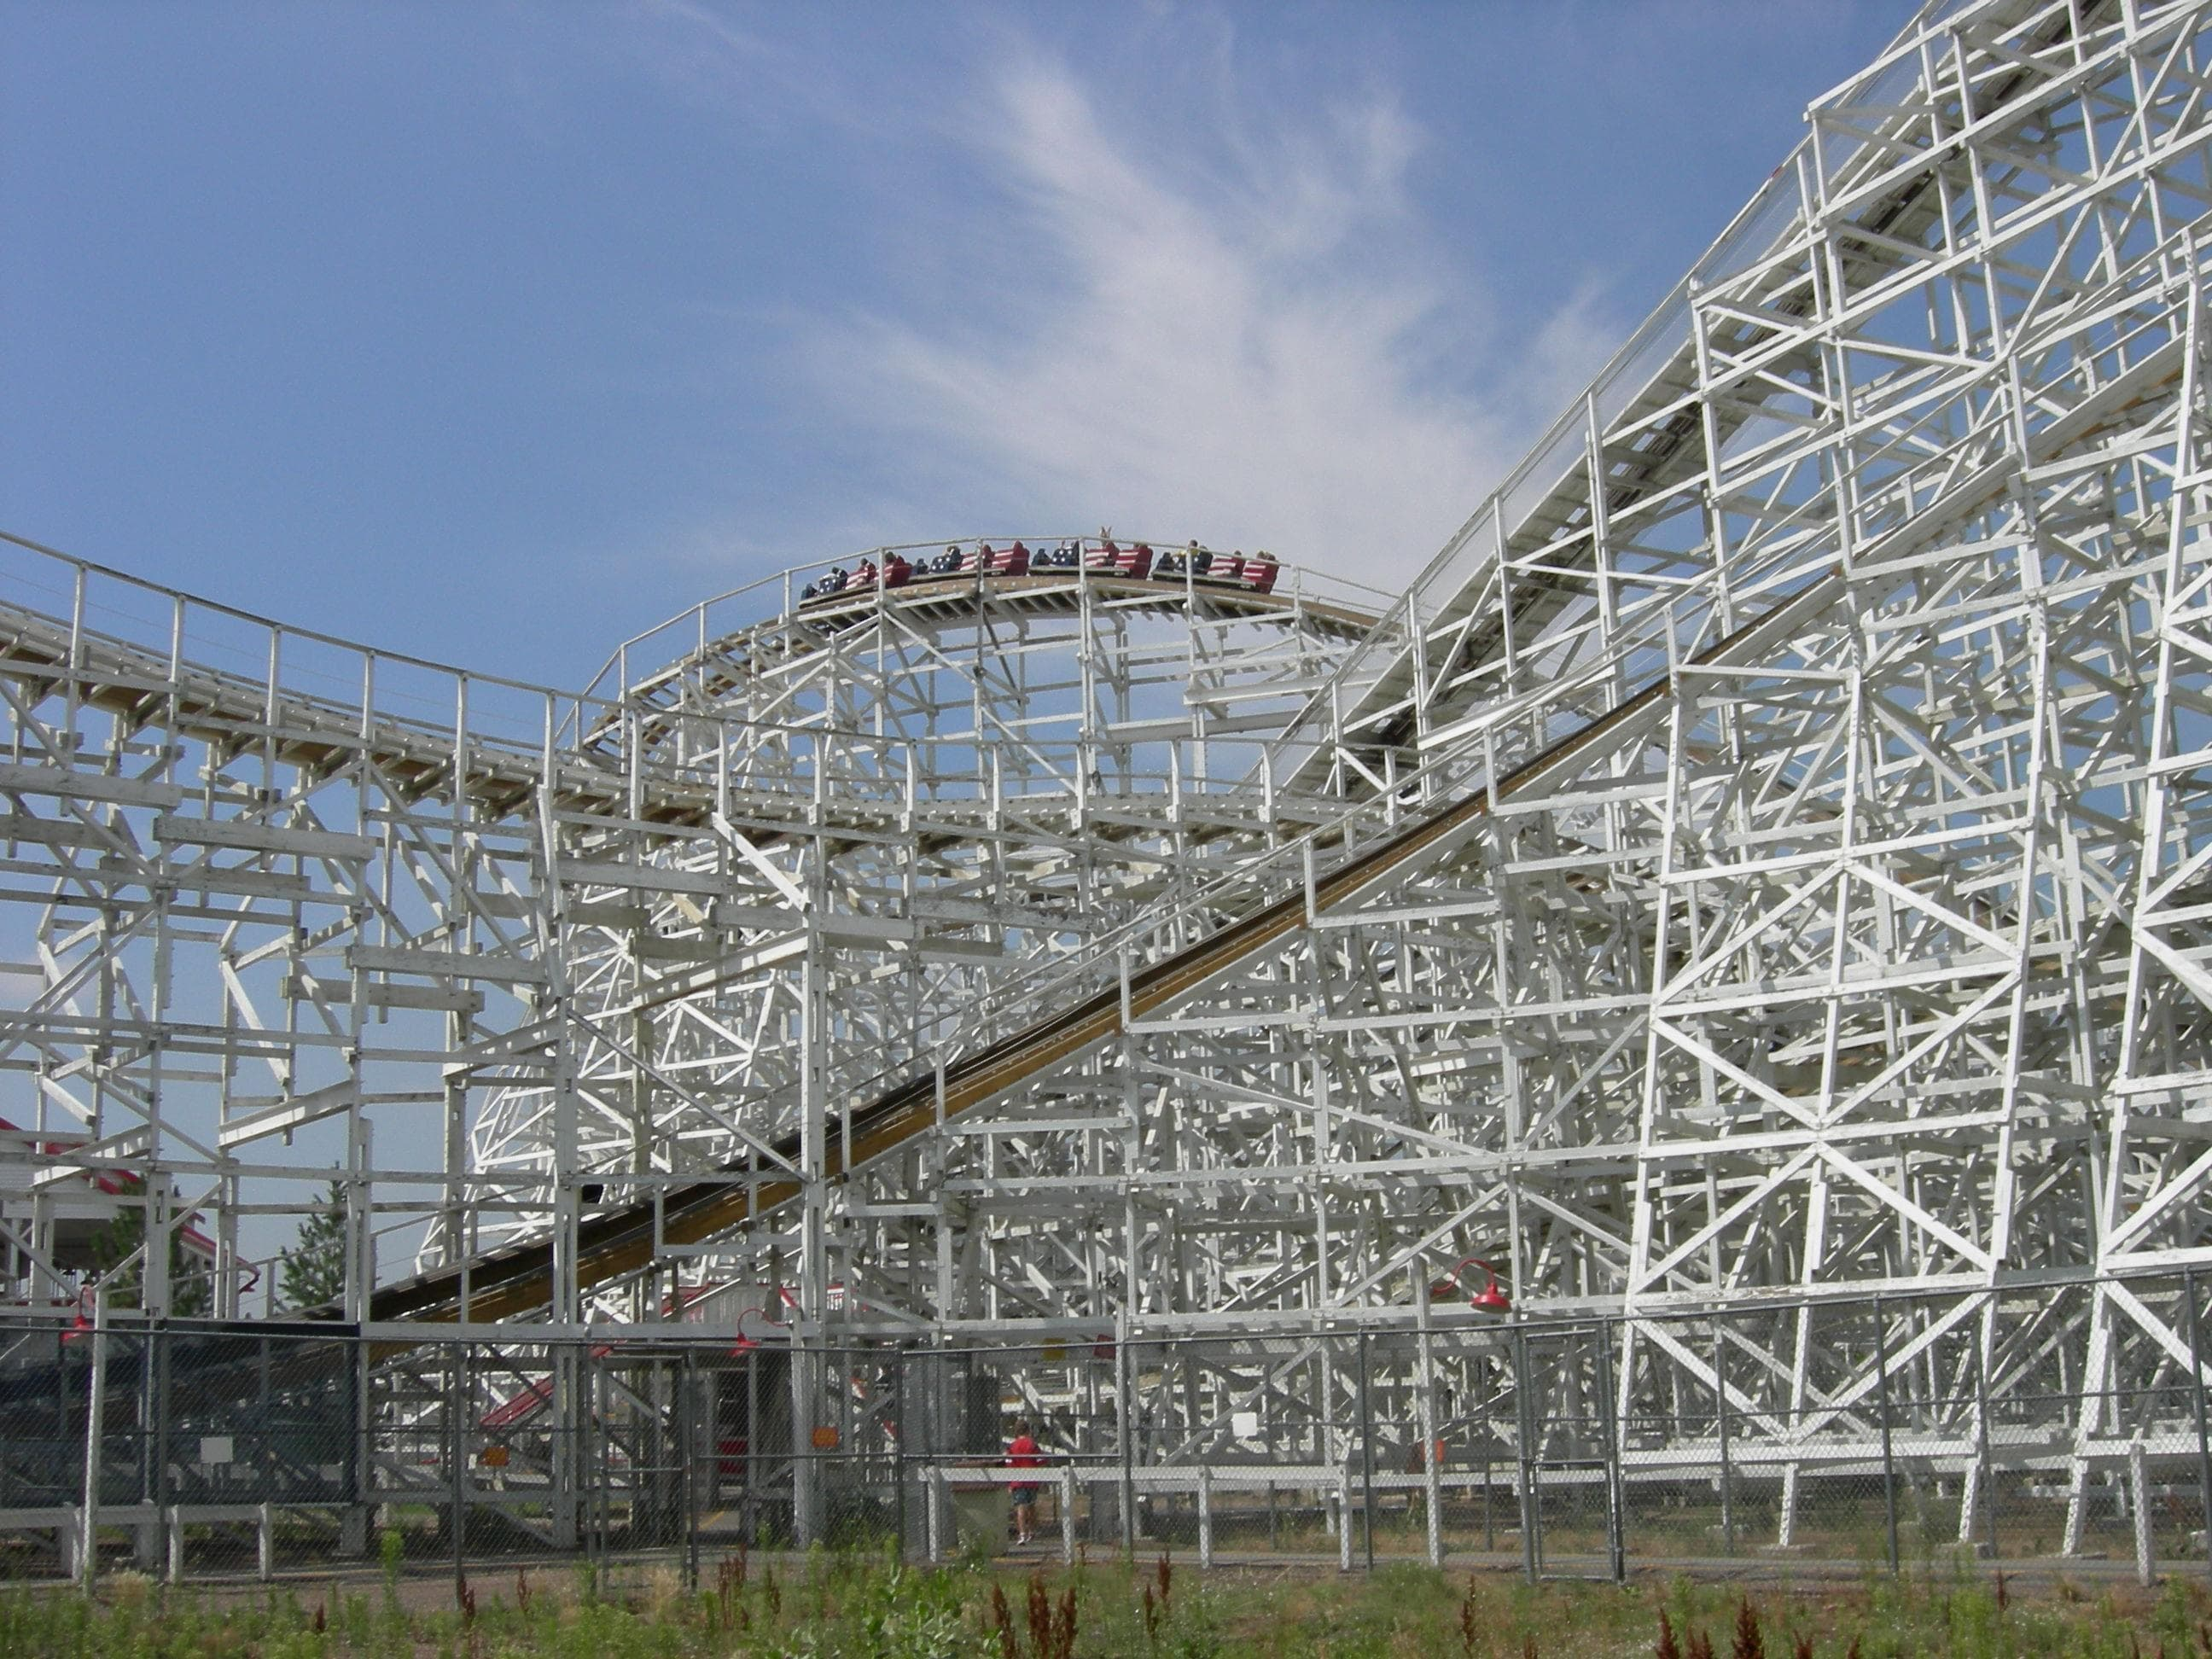 Image of Random Best Rides at Elitch Gardens